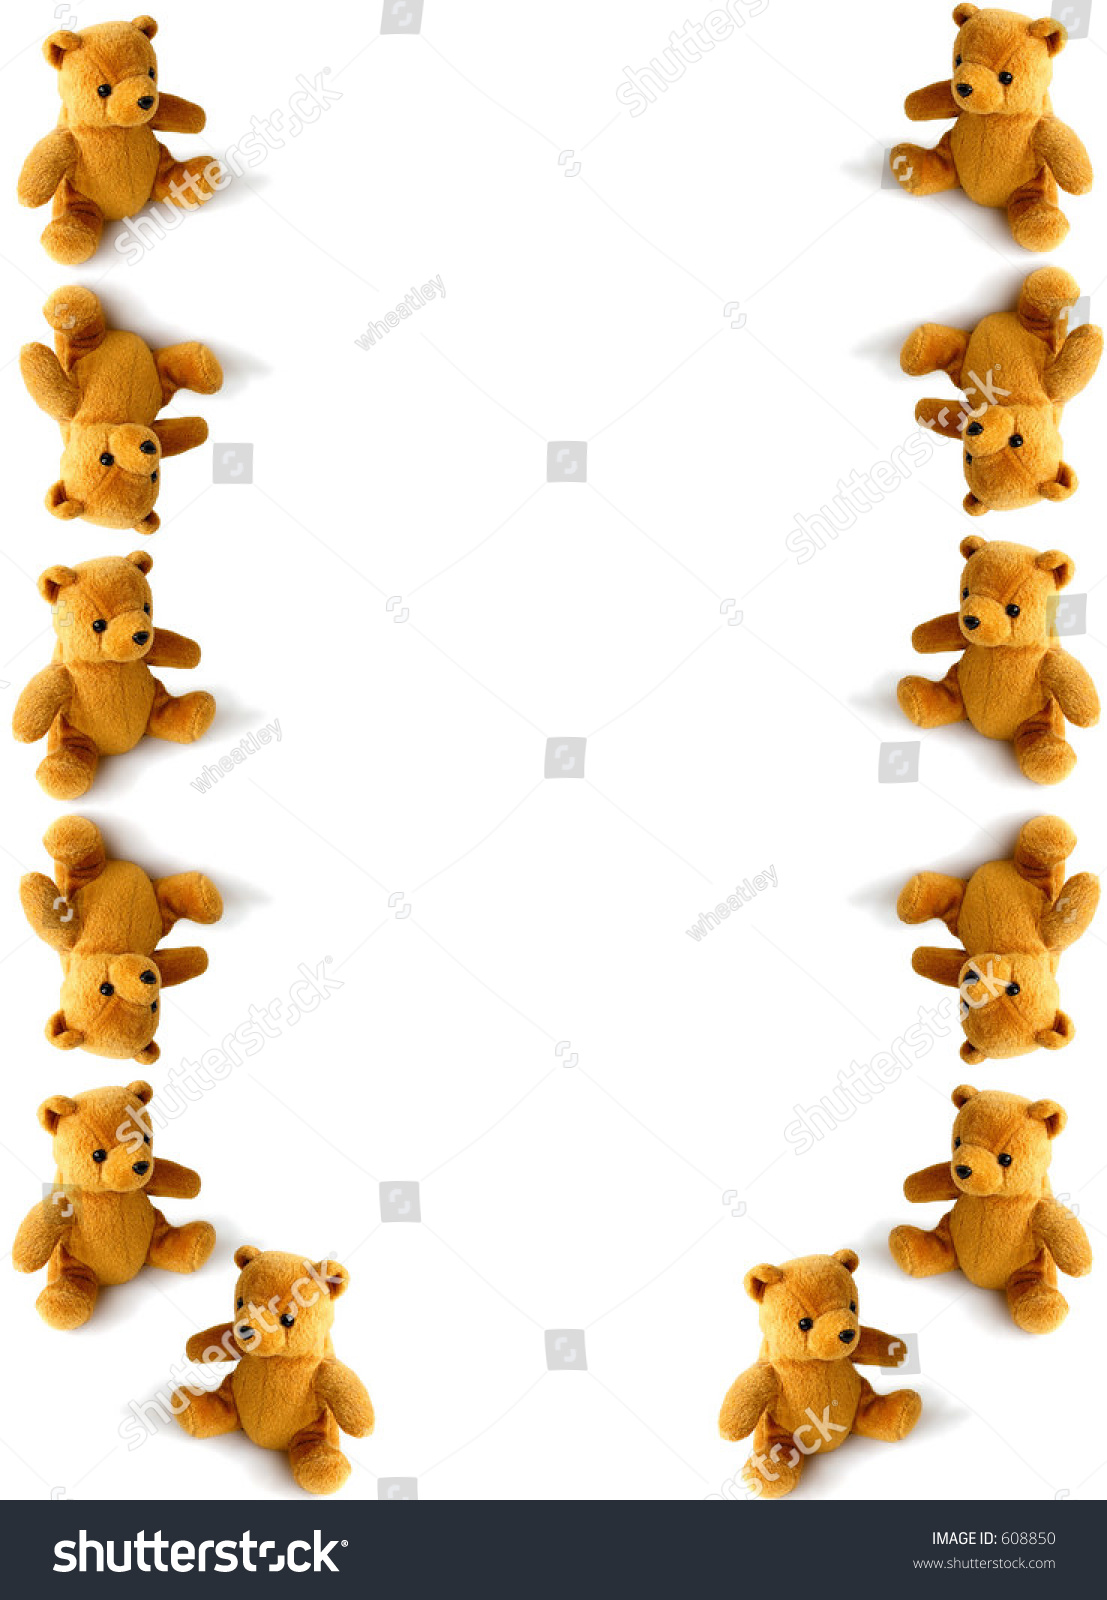 Tumbling Teddy Border Stock Photo 608850 : Shutterstock